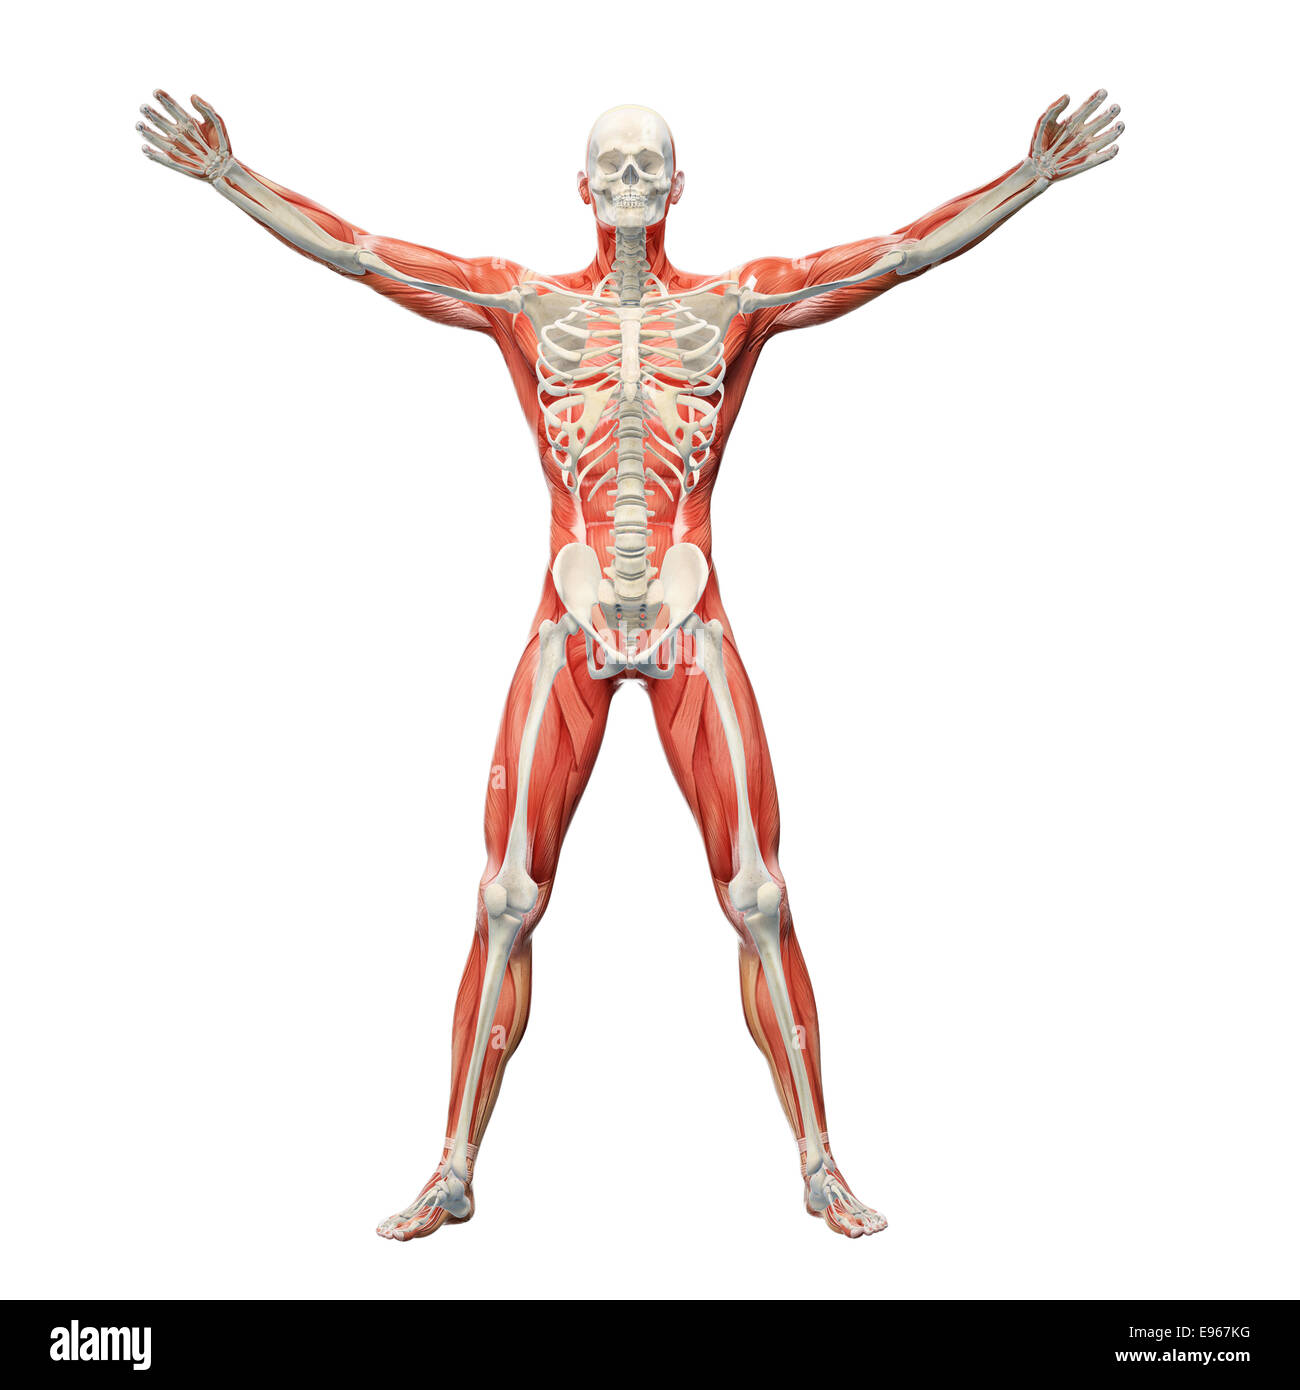 Human Anatomy With Visible Skeleton And Muscles Stock Photo